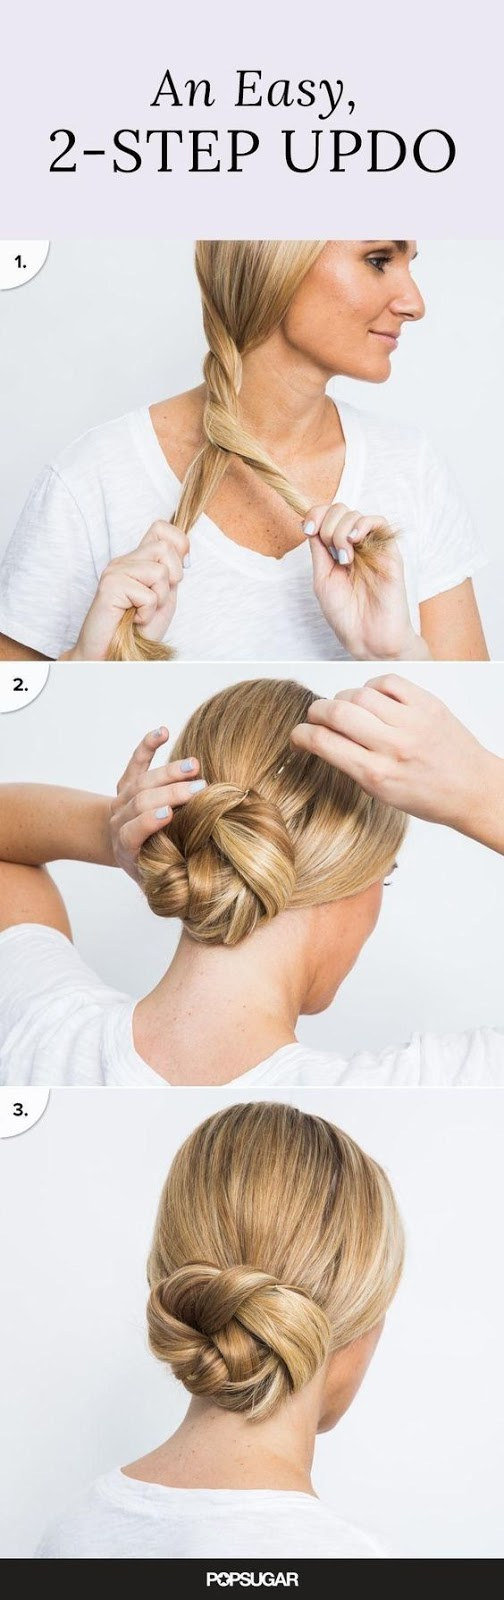 Easy Women's Hairstyles 2 Step UPDO